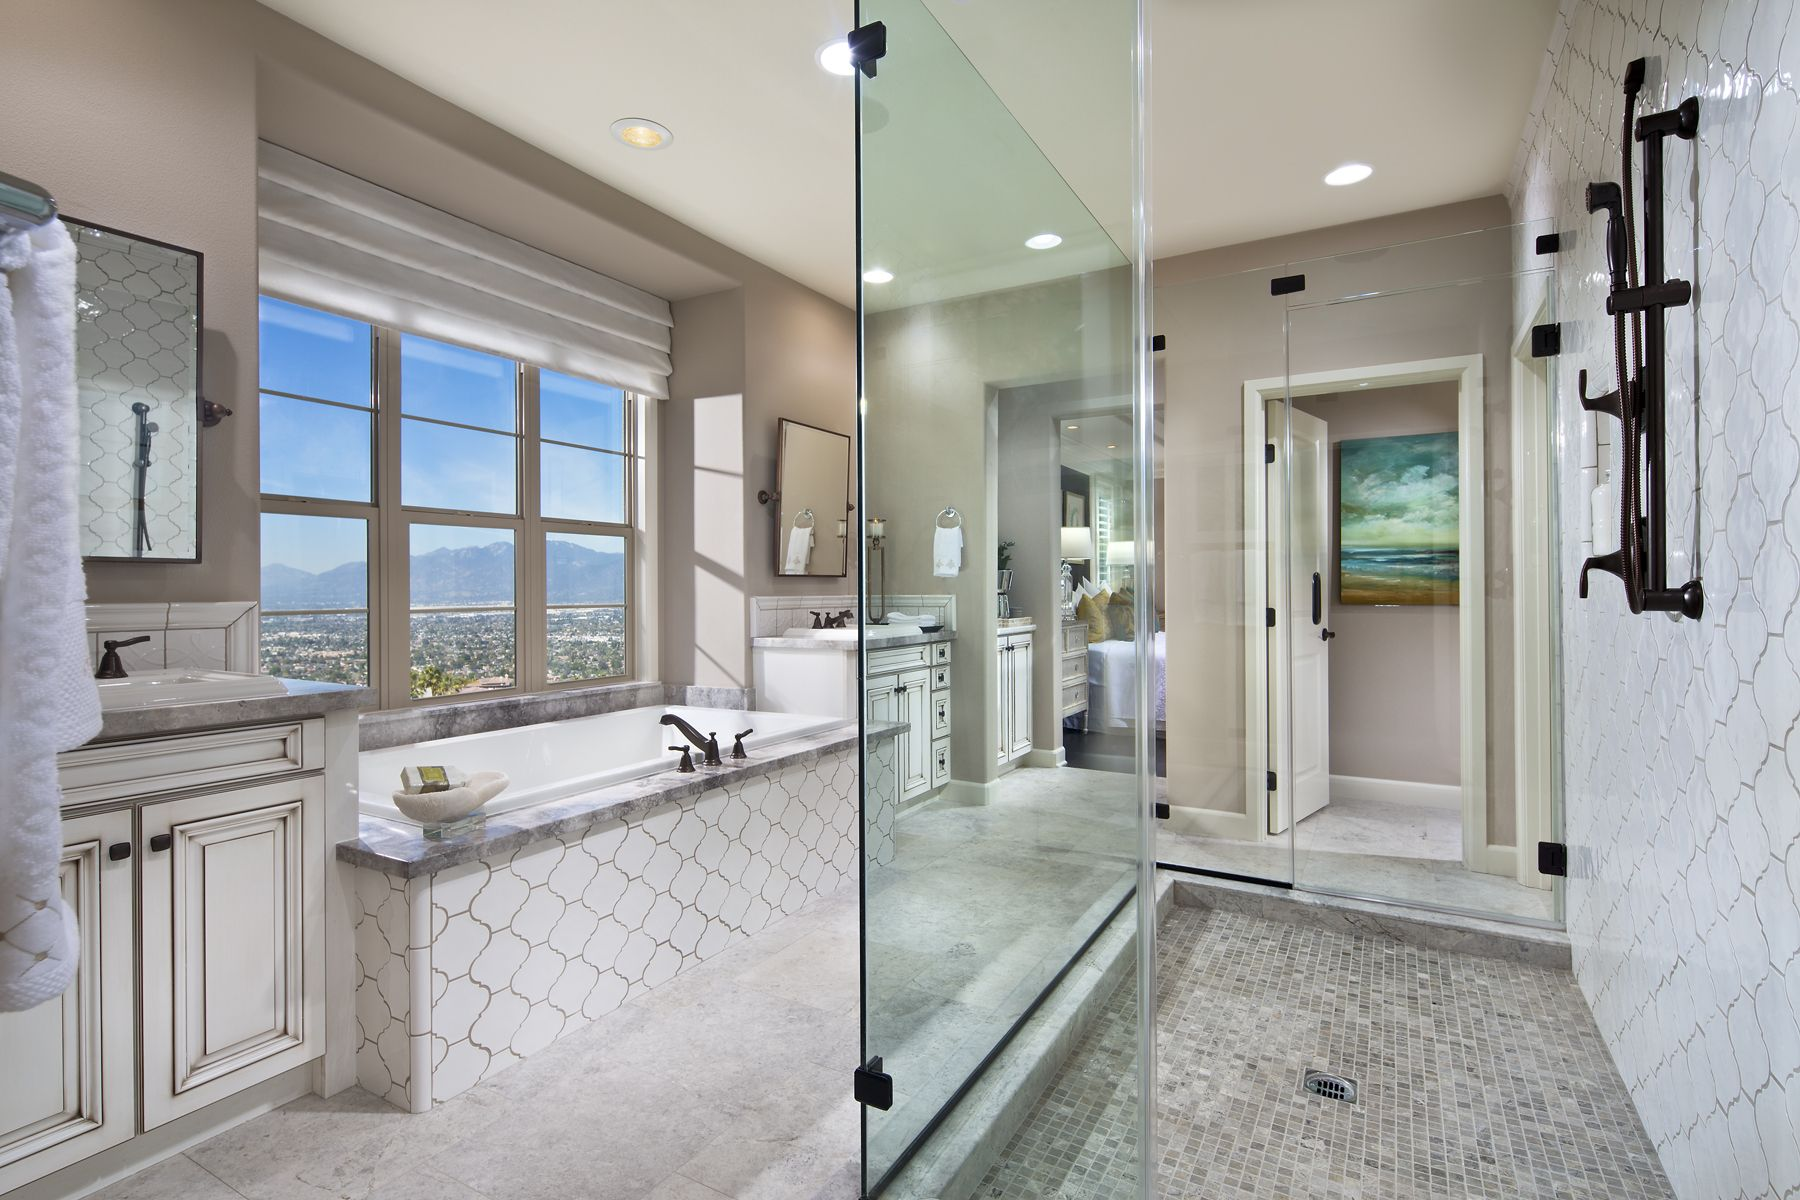 Sophisticated master bathroom decorated in all white features a